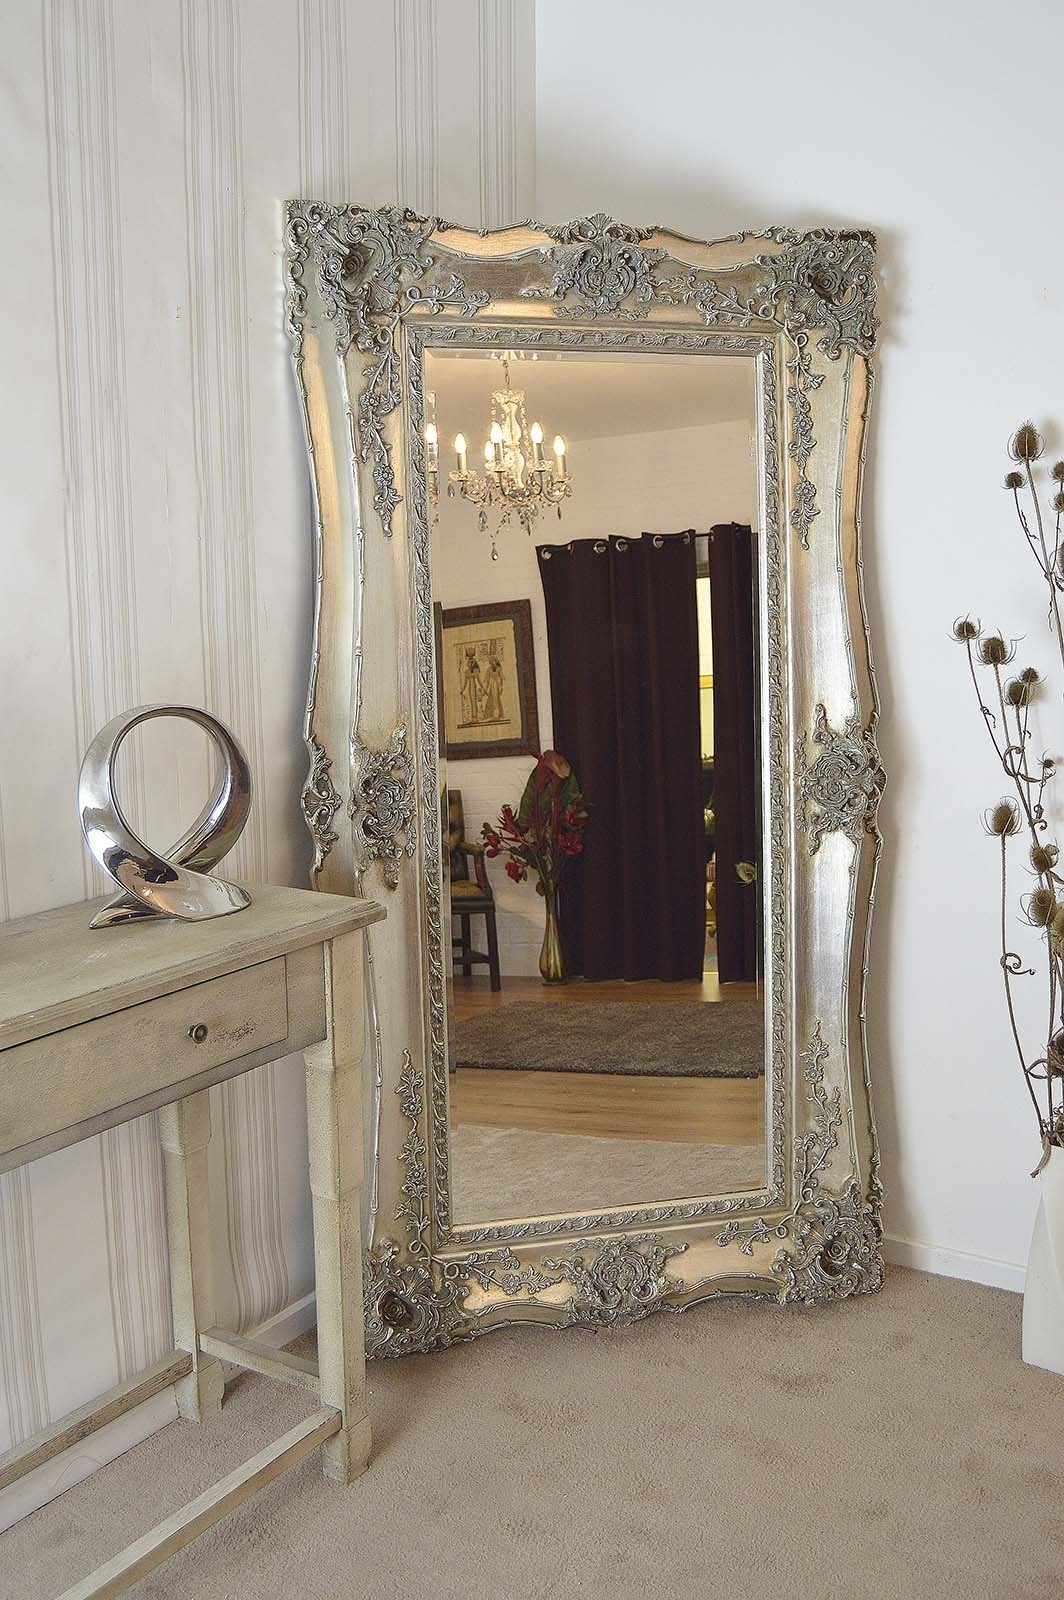 Antique Wall Mirrors Decorative Inarace Throughout Large Silver Vintage Mirror (Image 1 of 15)